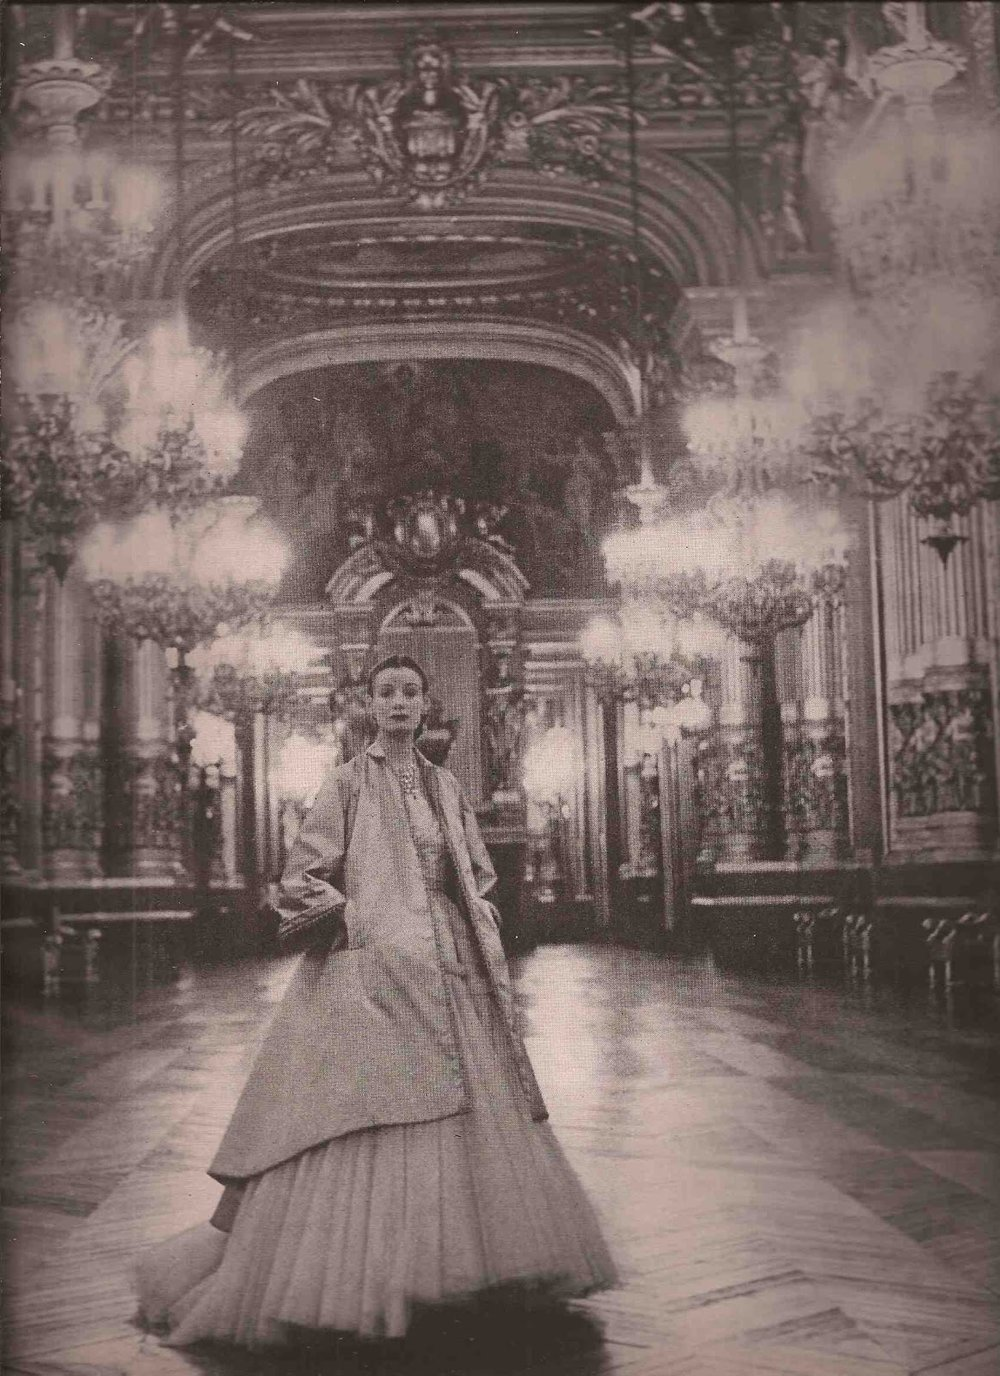 Christian Dior Summer Preview on a model at the Palais Garnier. Photo by Clifford Coffin, published in Vogue US April 1948.